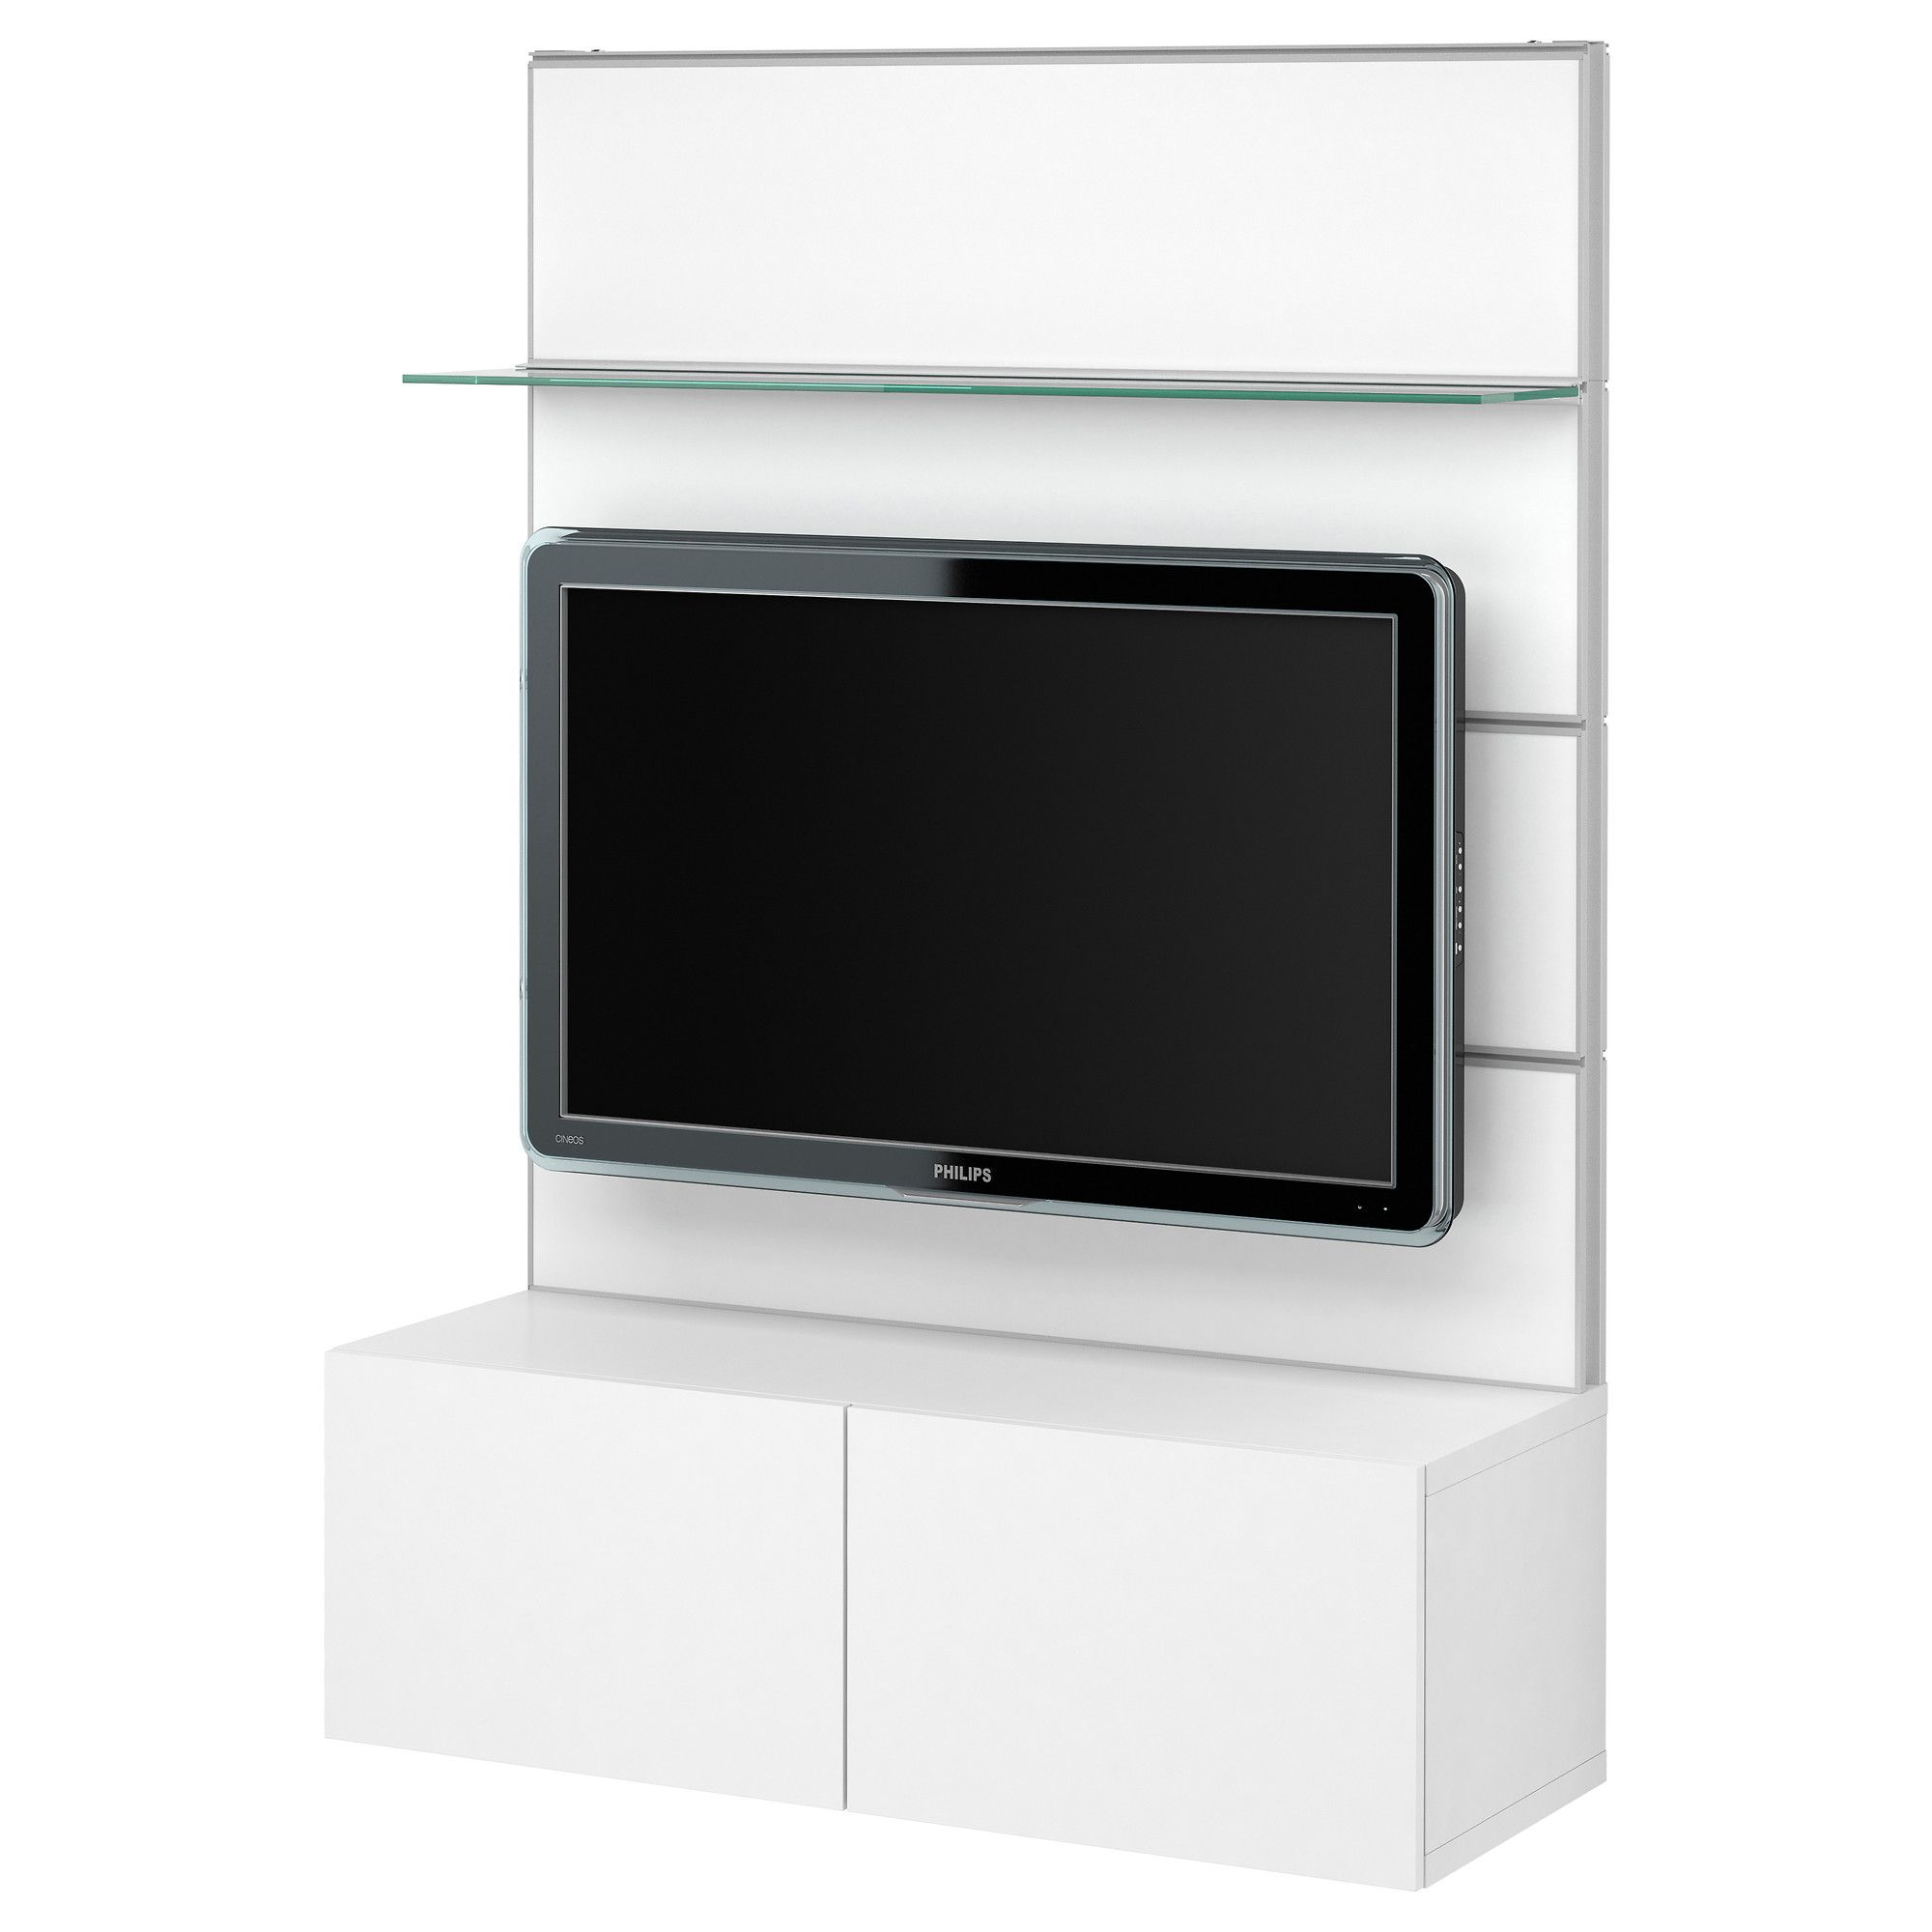 tv cabinet ikea 1000 images about tv storage unit ideas on  tv  storage ikea and. Lack Tv Unit Black Width 35 3 8 Quot Depth 10 1 Tv Cabinet Ikea